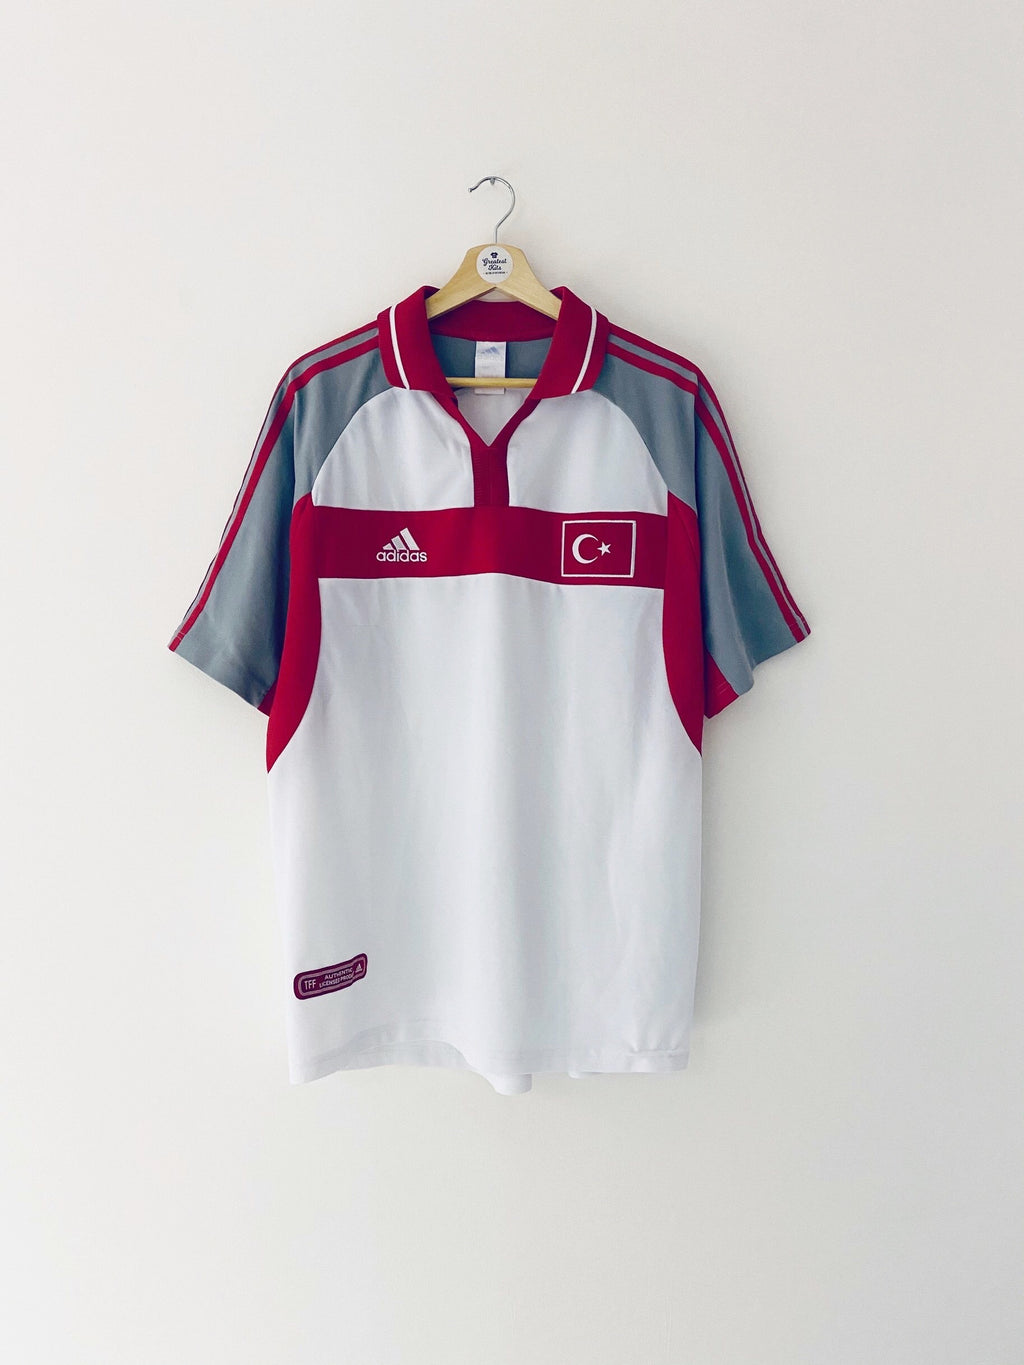 2000/02 Turkey Away Shirt (L) 8.5/10